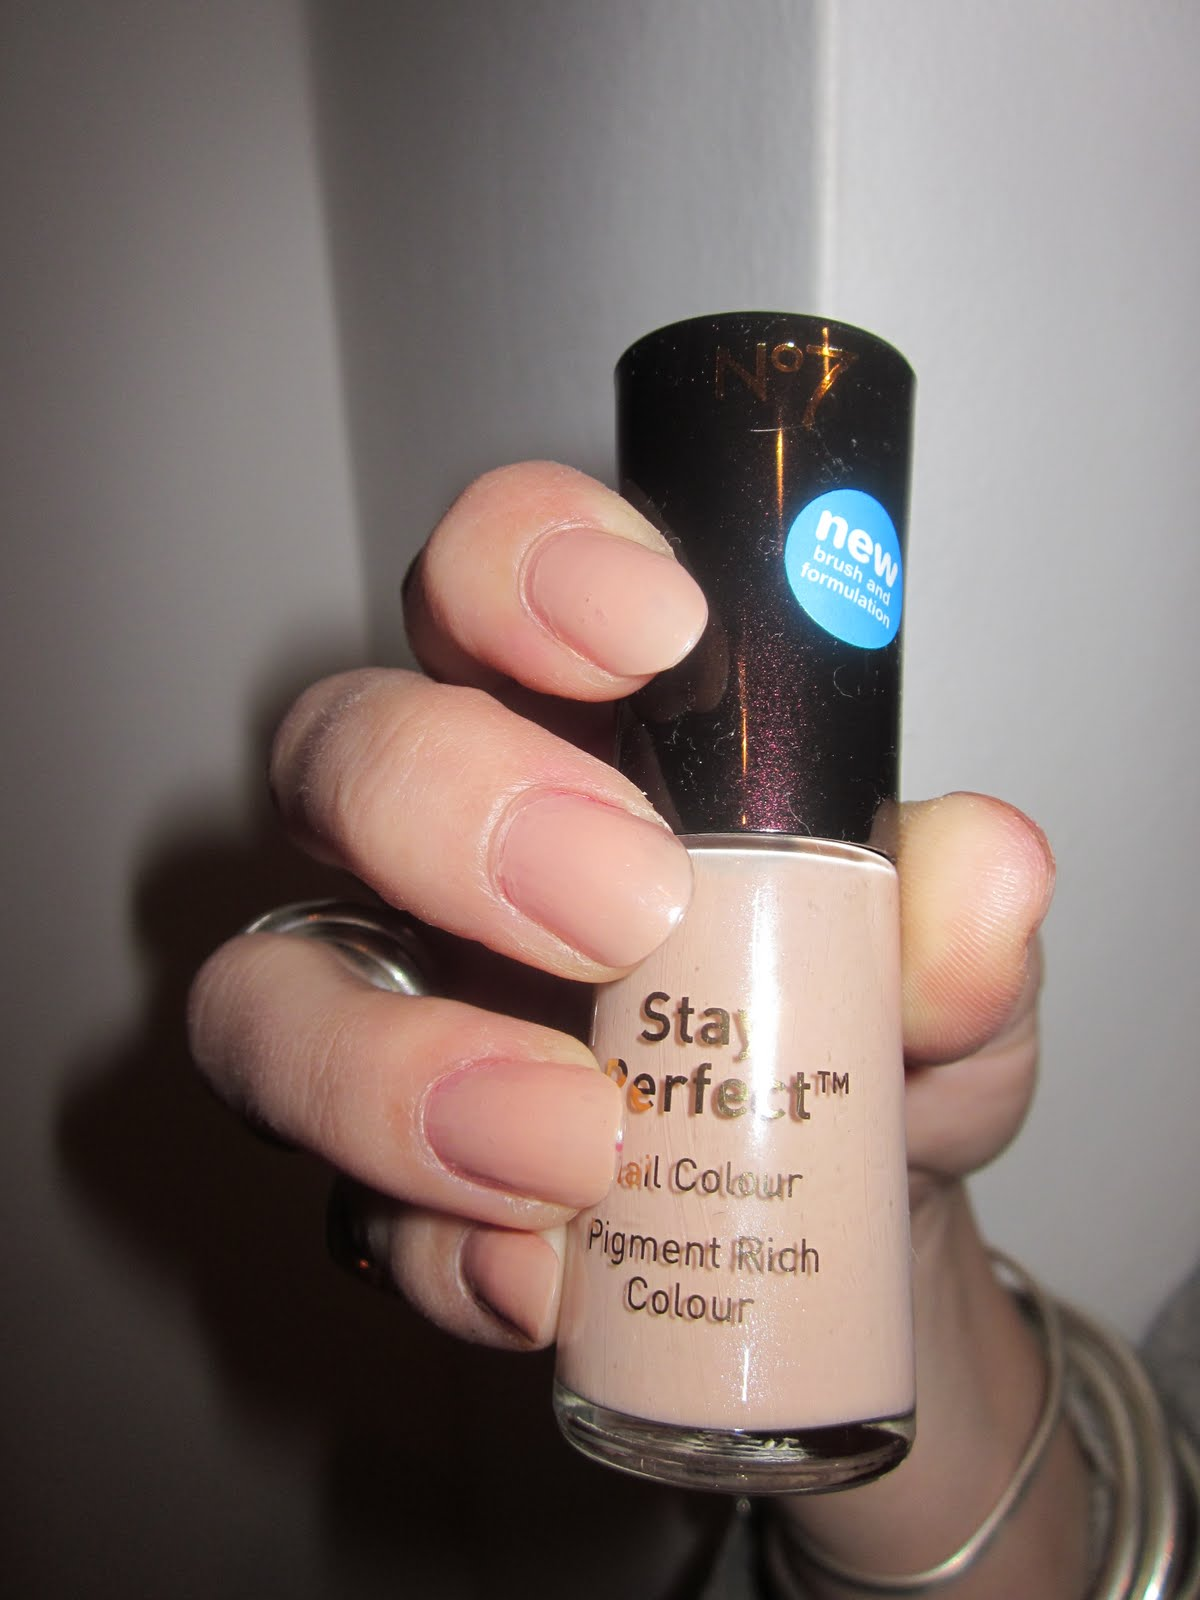 No 7 Stay Perfect Nail Varnish in So Simple | London Make-up Blog